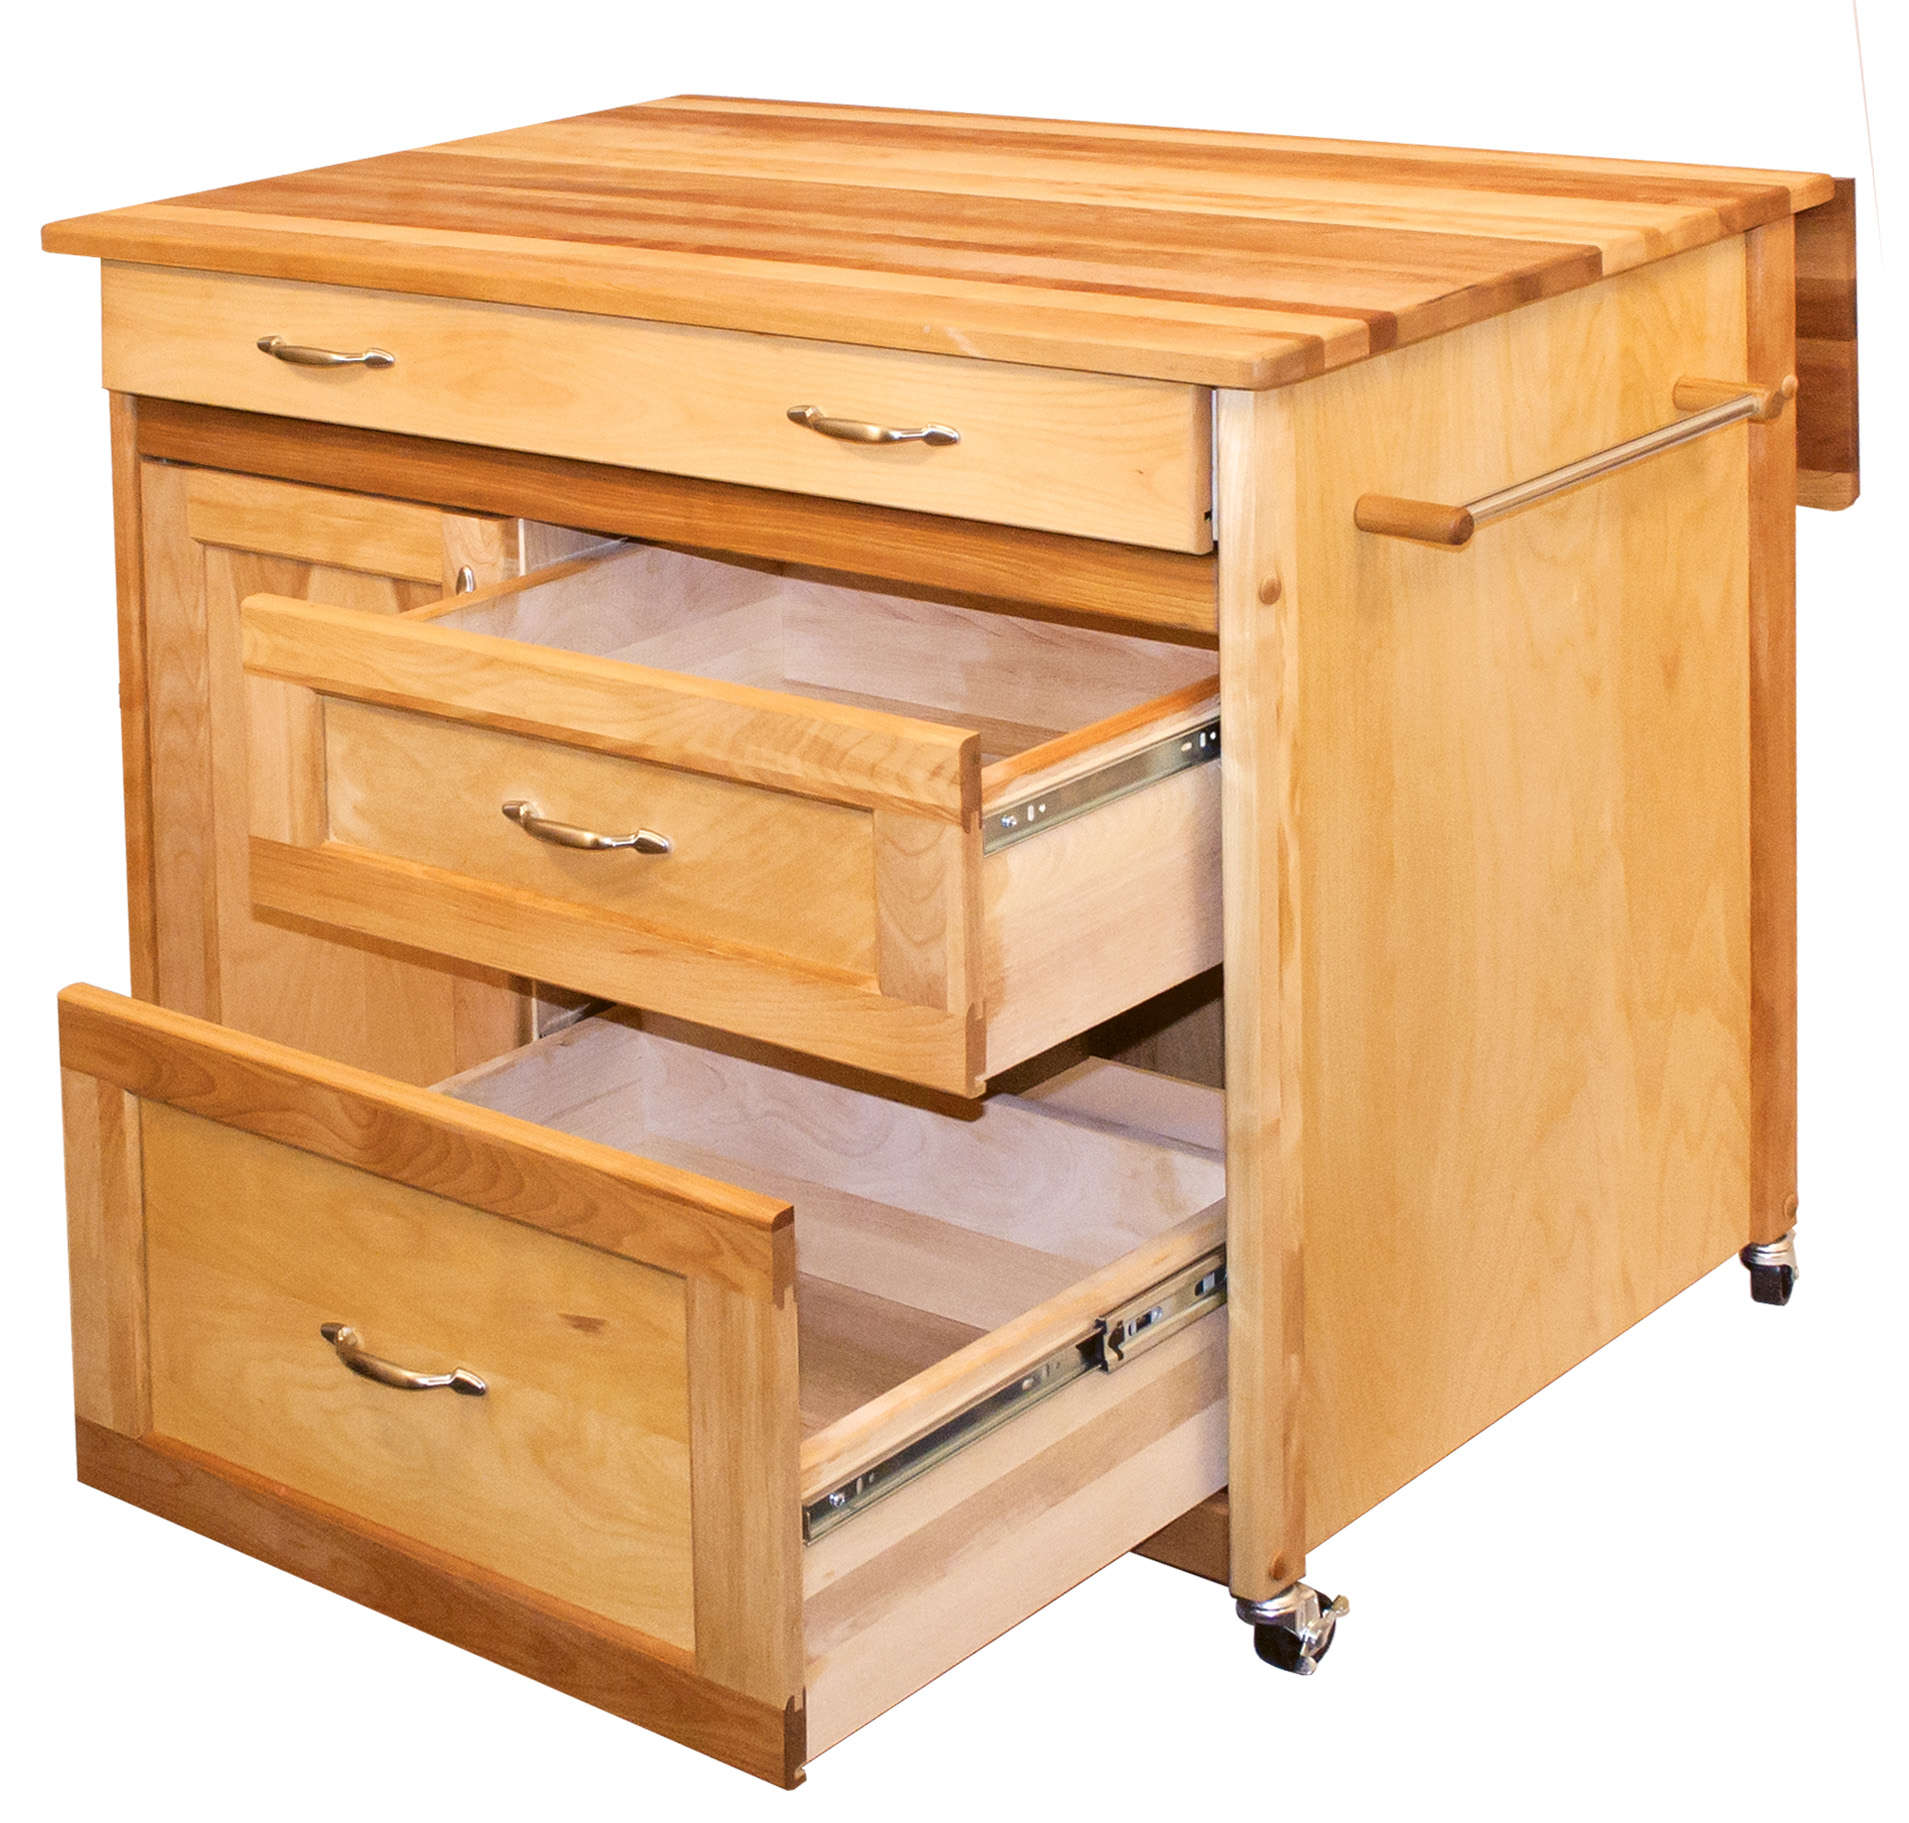 Kitchen Island With Locking Casters Catskill Craftsmen Mid-sized Drawer Island Model 1521